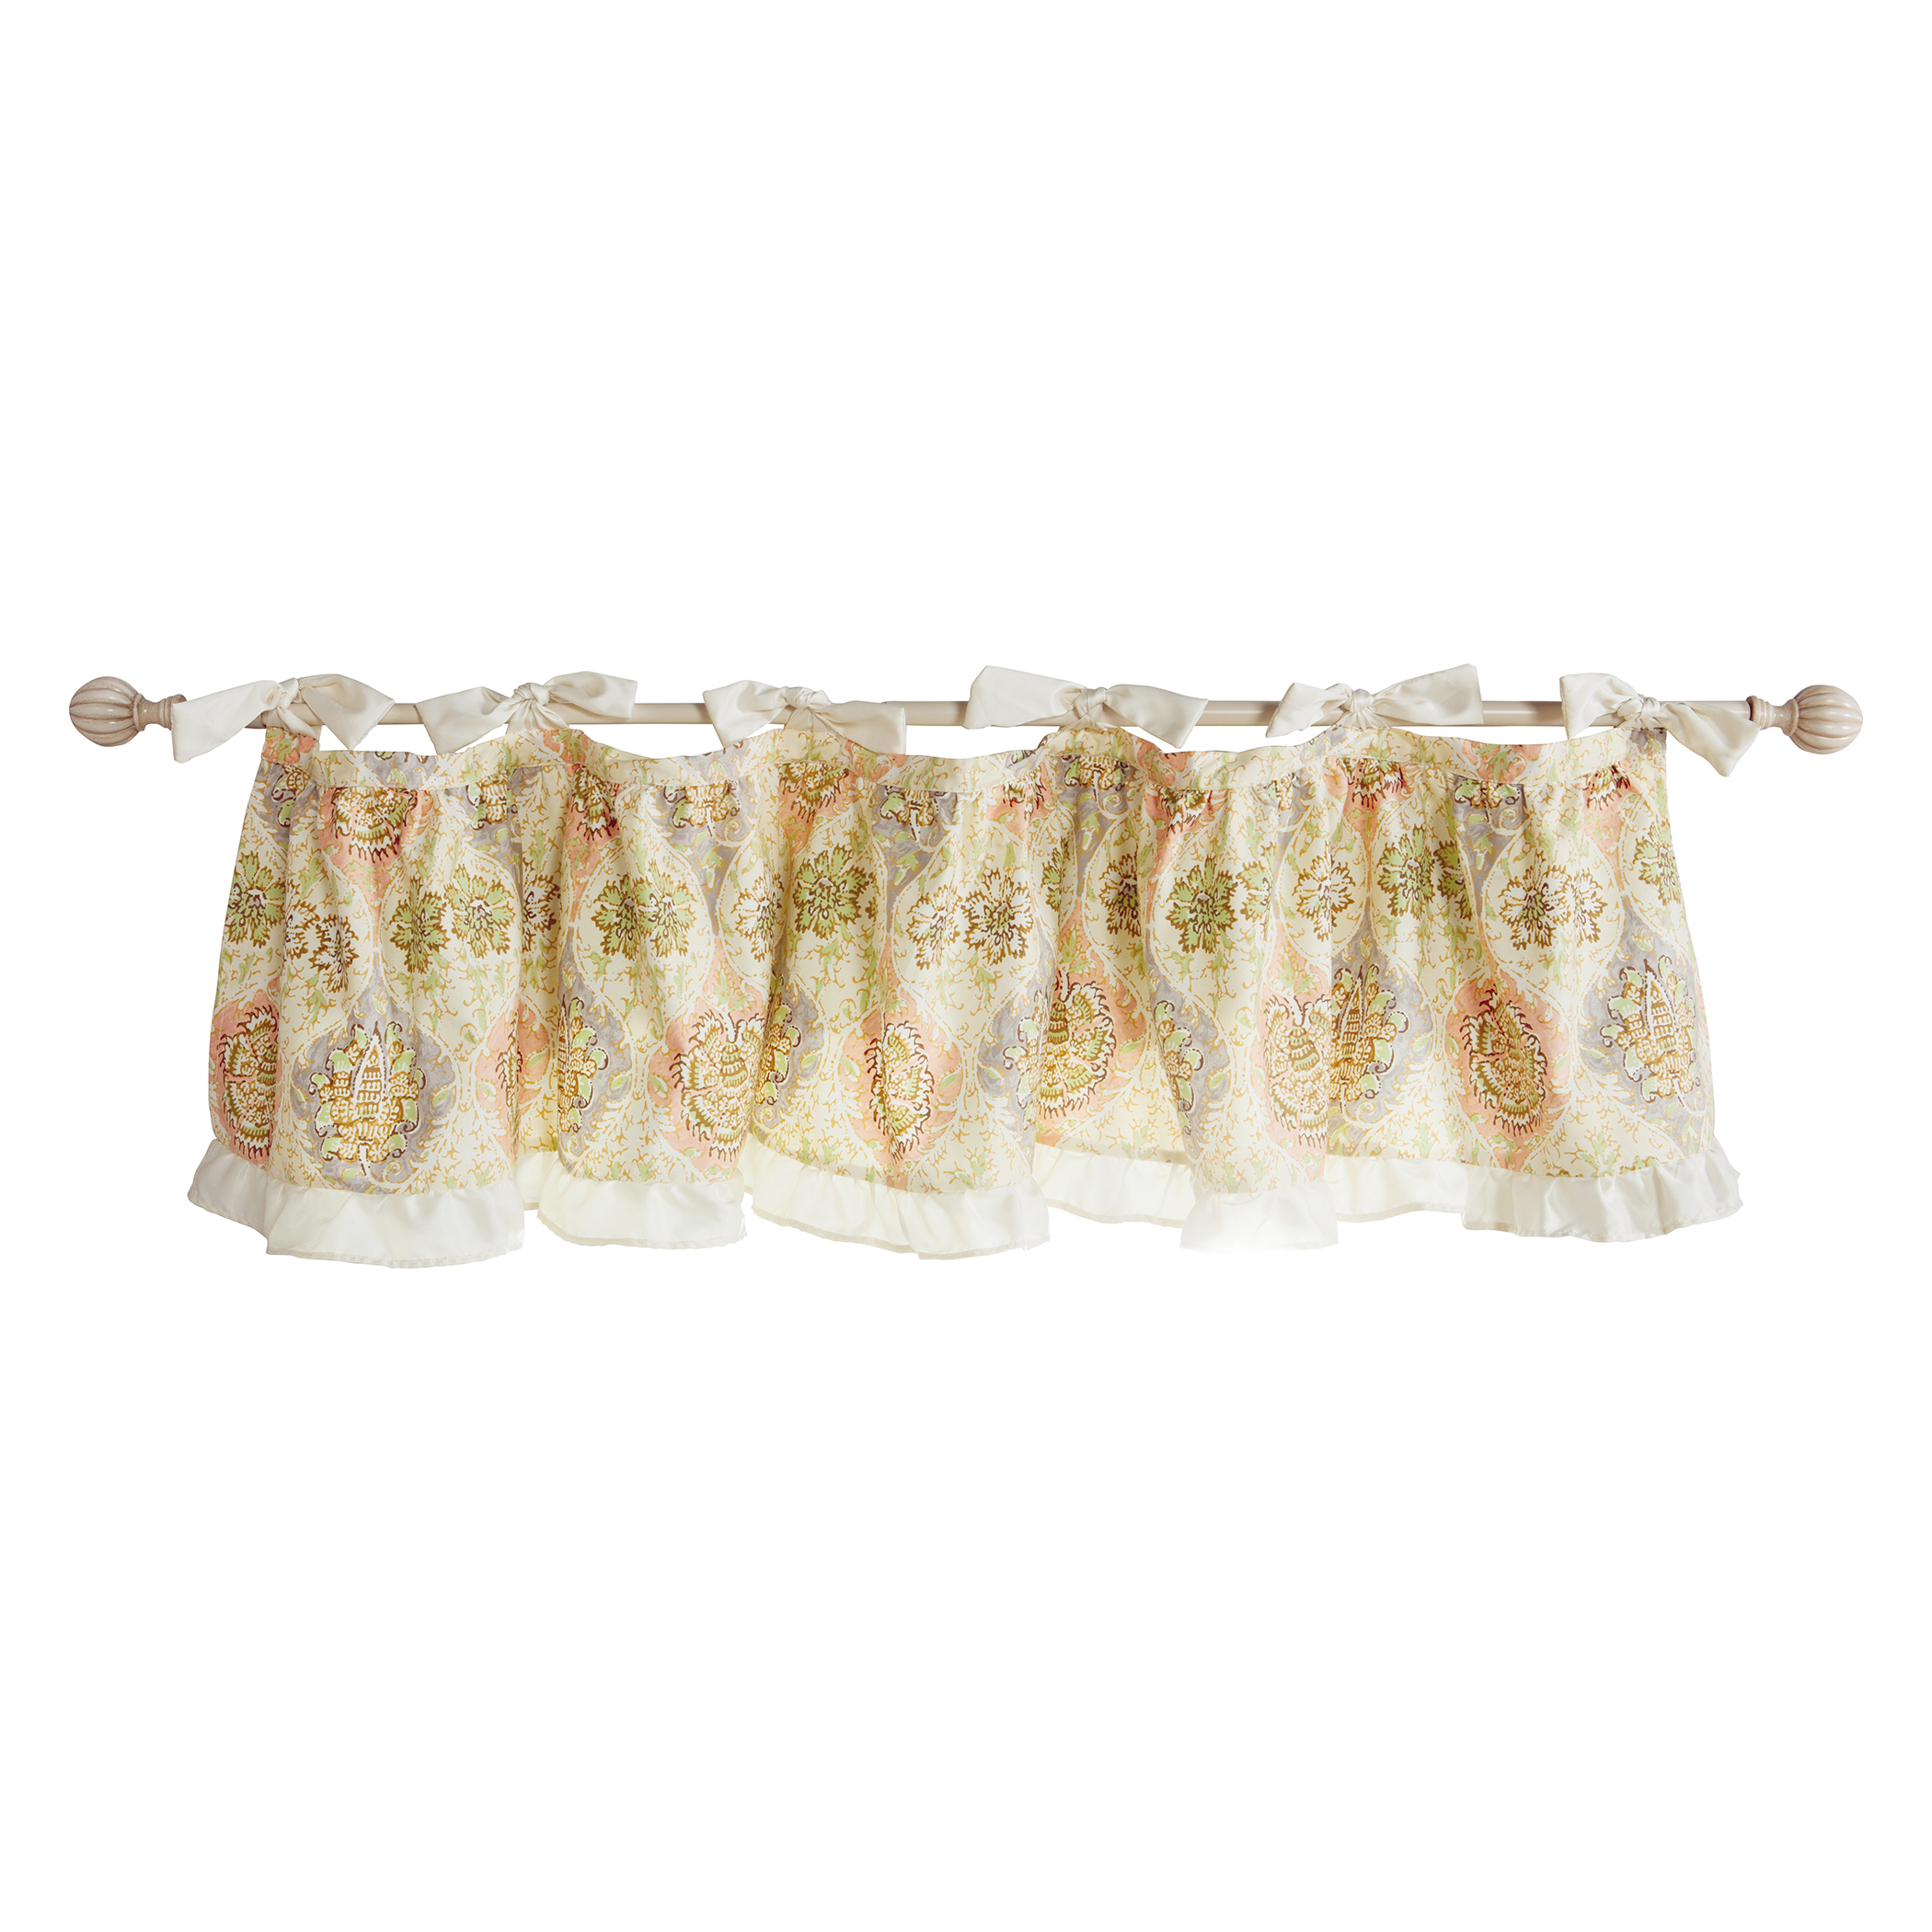 Waverly Rosewater Glam Window Valance by Trend Lab